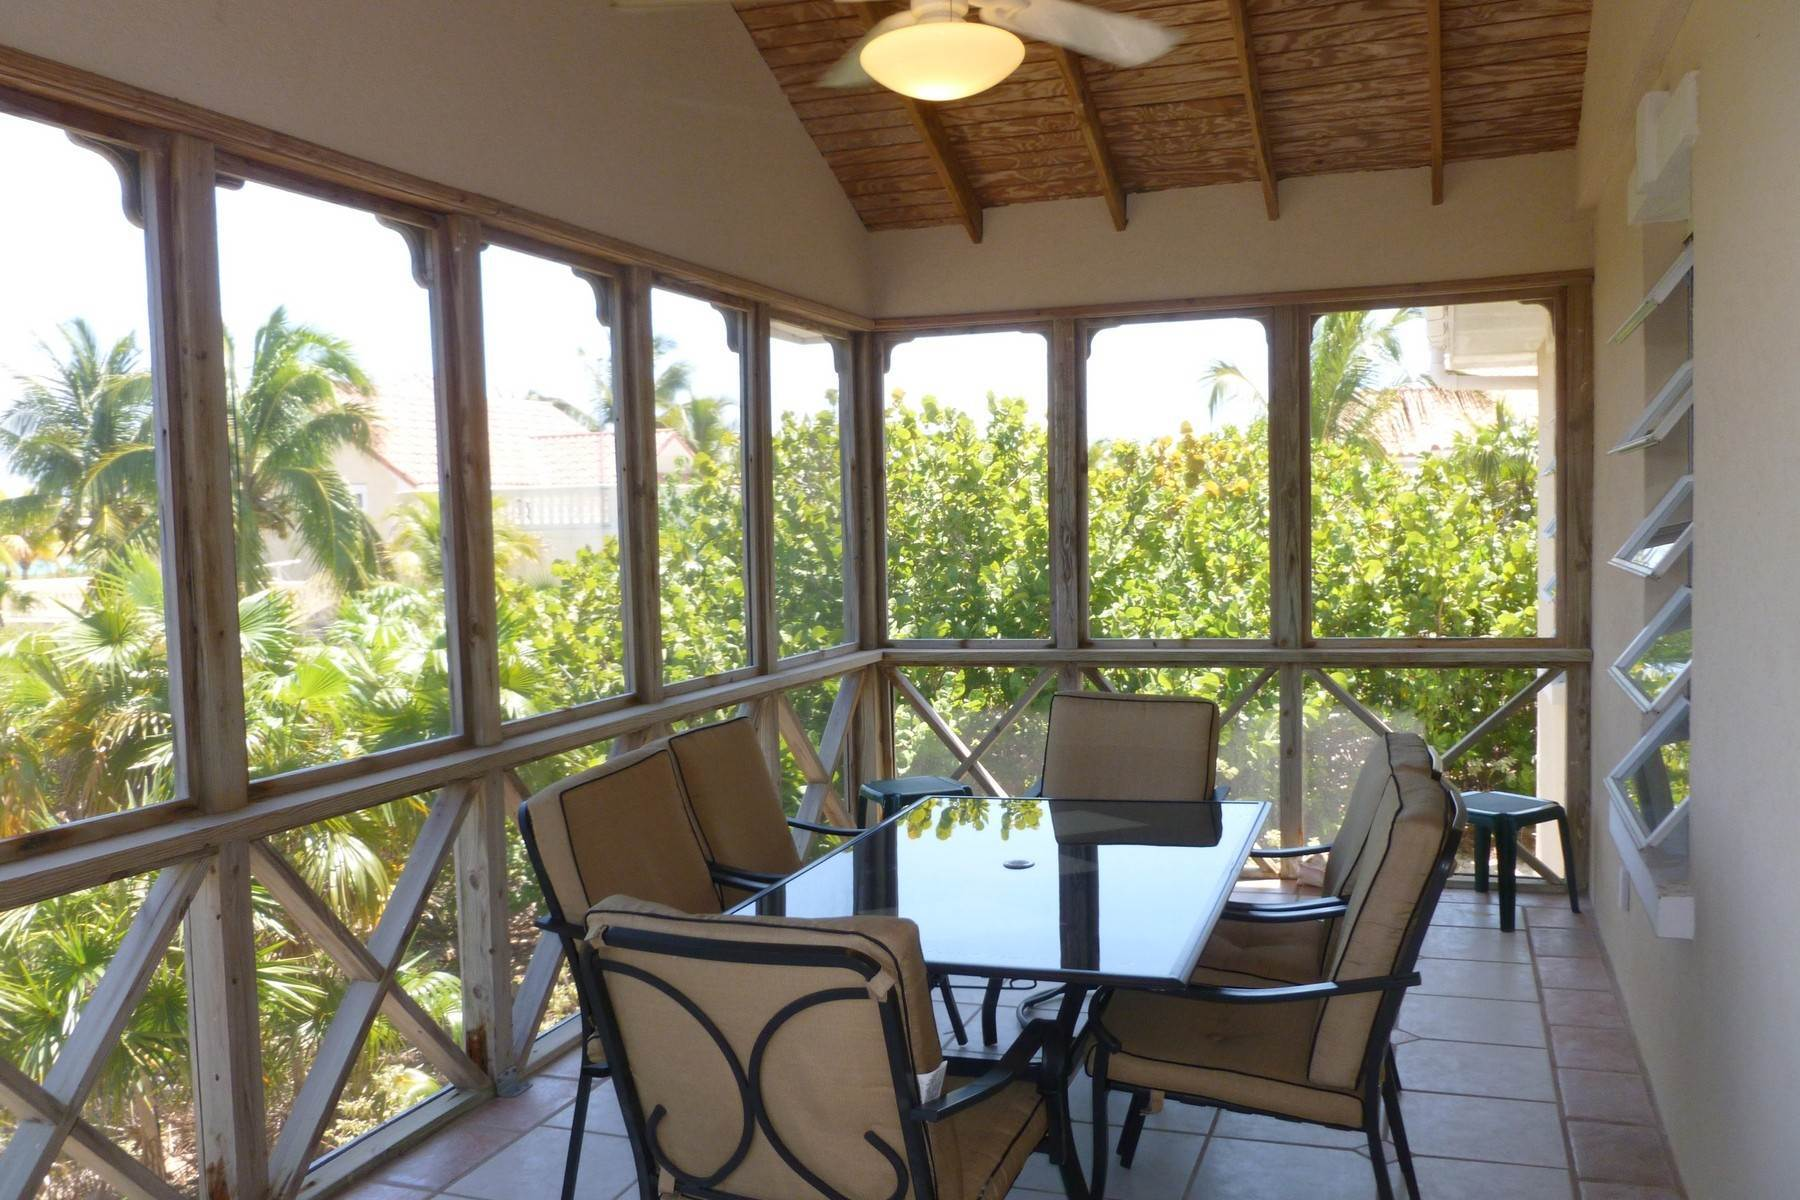 7. Single Family Homes for Sale at Whitby Residential Home Oceanview Whitby, North Caicos TCI BWI Turks And Caicos Islands